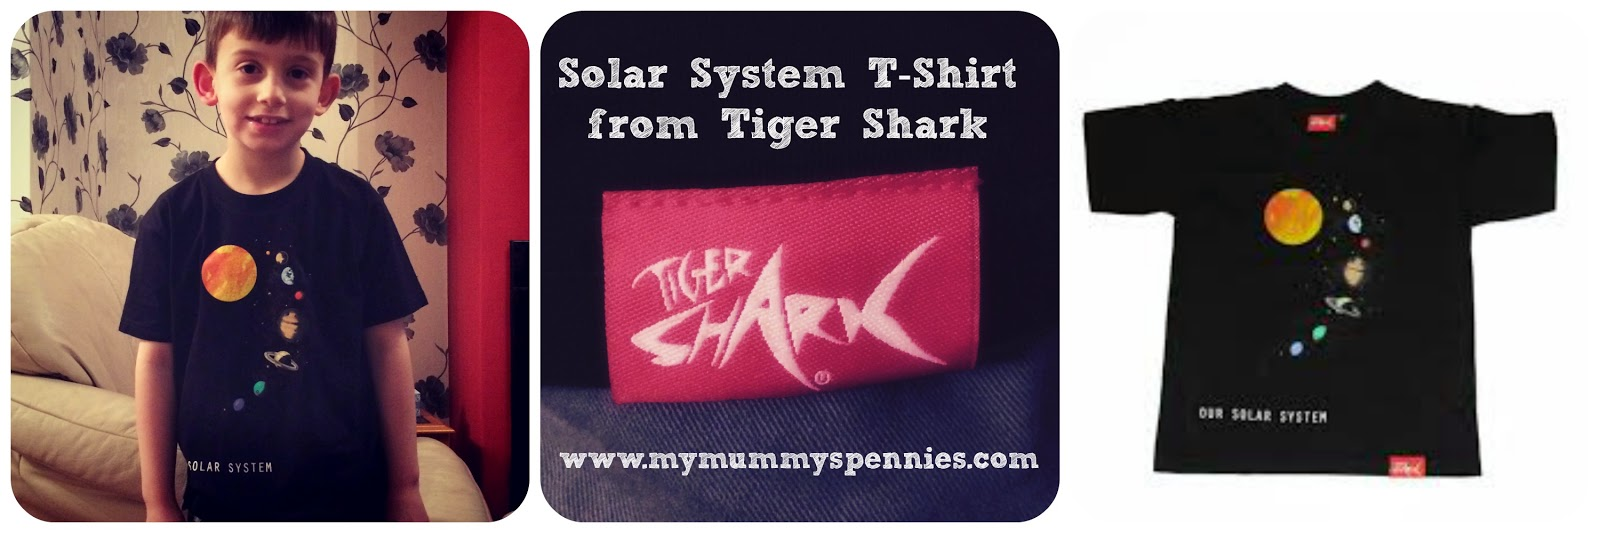 Solar System T-Shirt from tiger shark